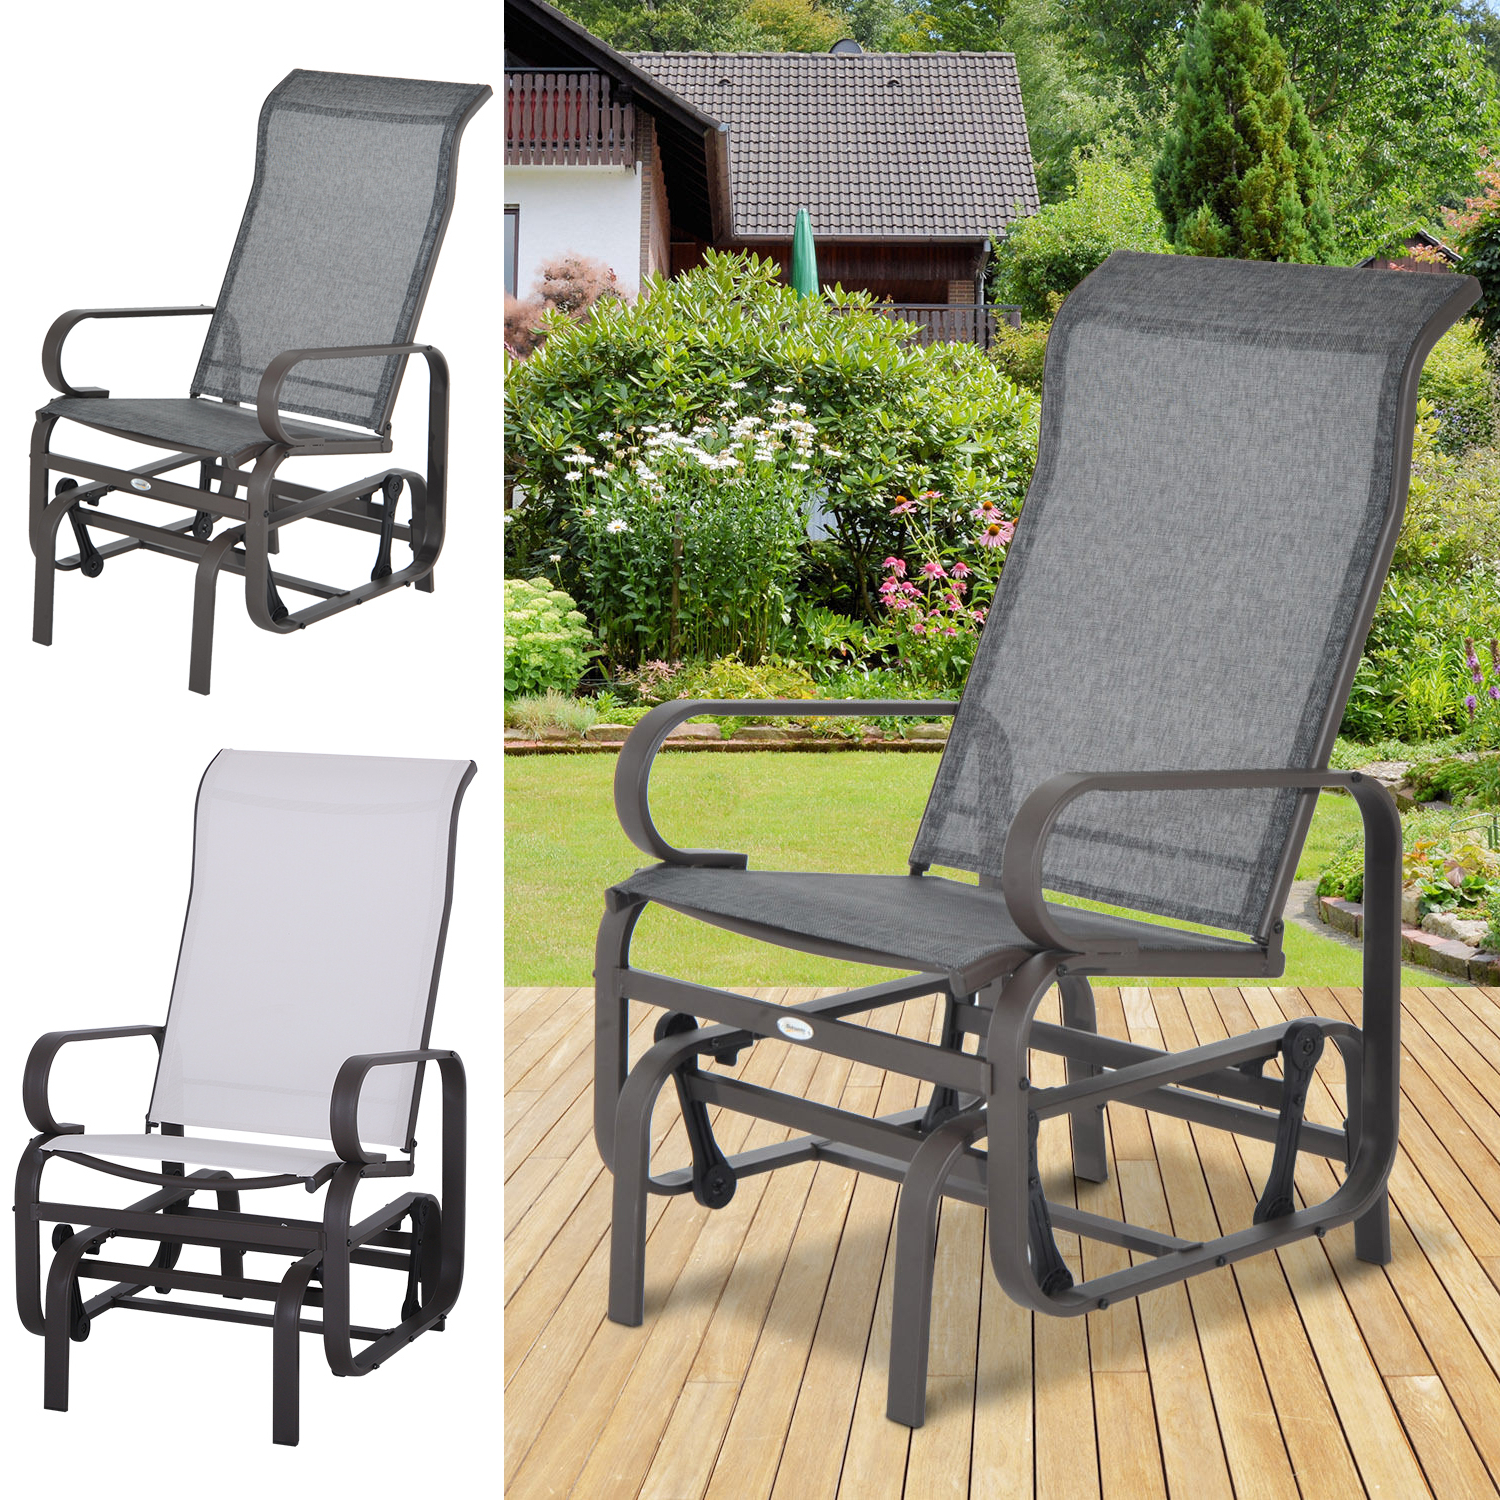 Details About Patio Sling Fabric Glider Swing Chair Seat Lounger Porch Rocker Outdoor Garden For Newest Outdoor Fabric Glider Benches (View 13 of 30)